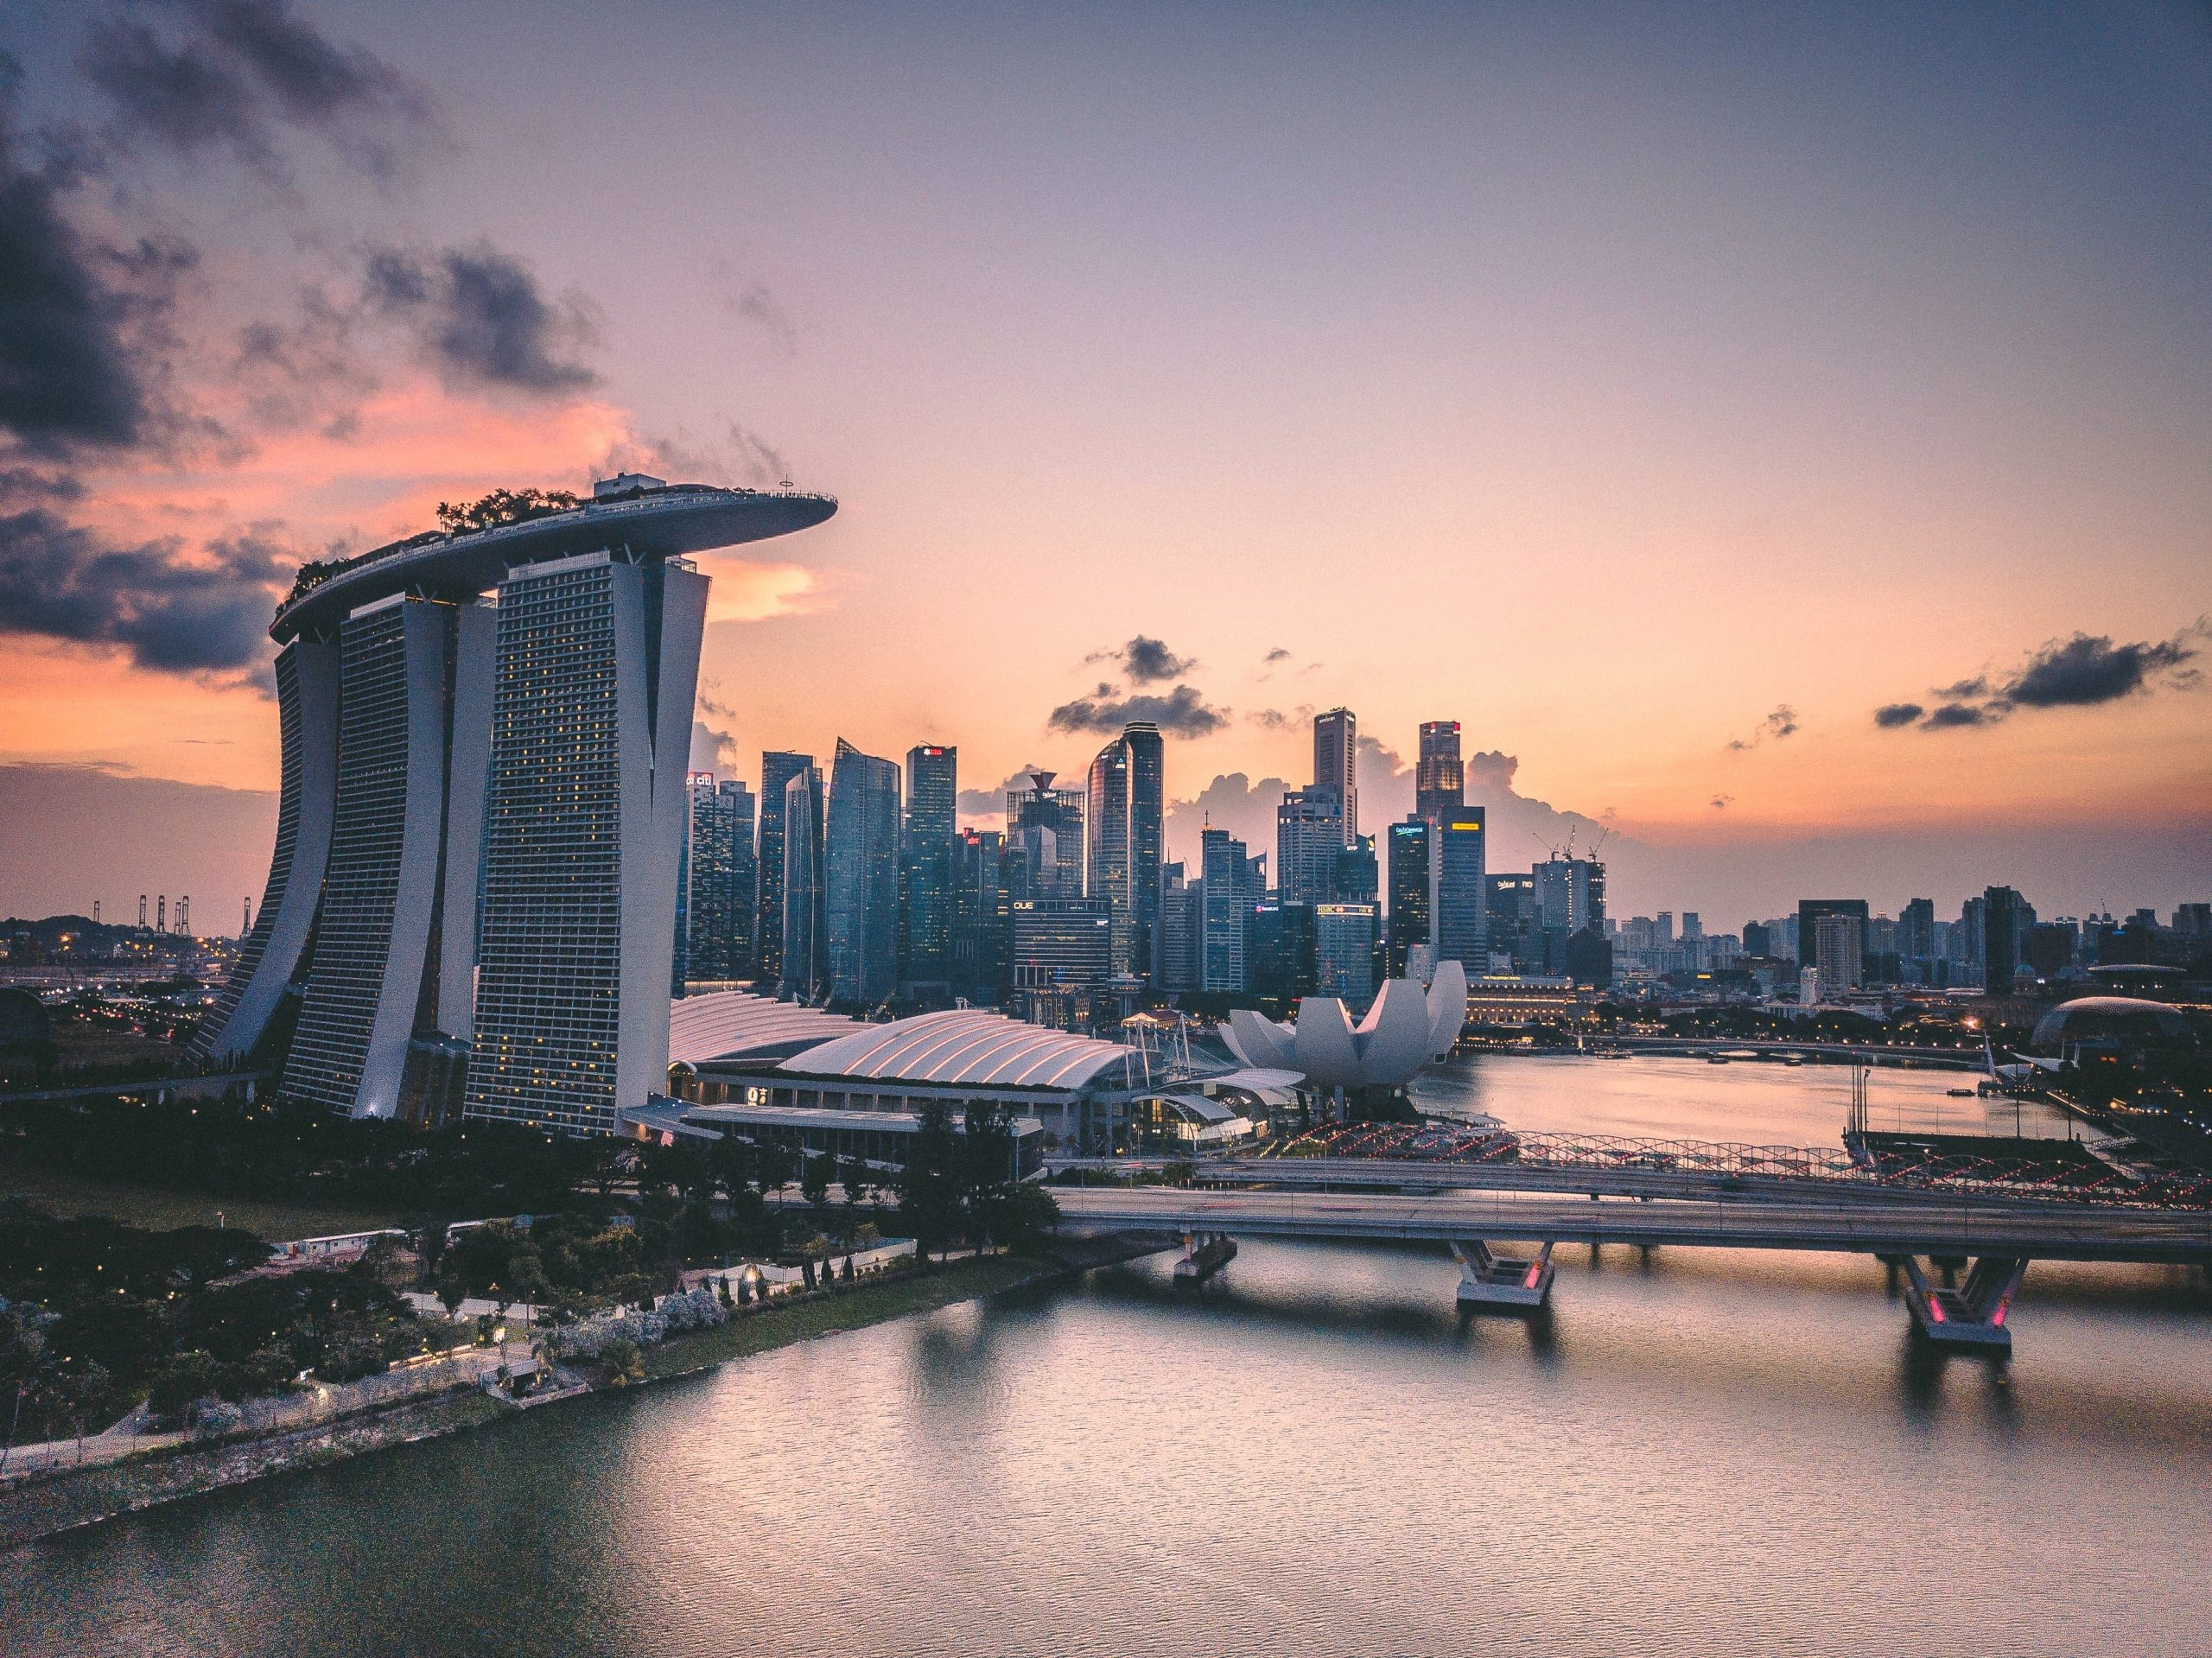 buildings in singapore during sunset